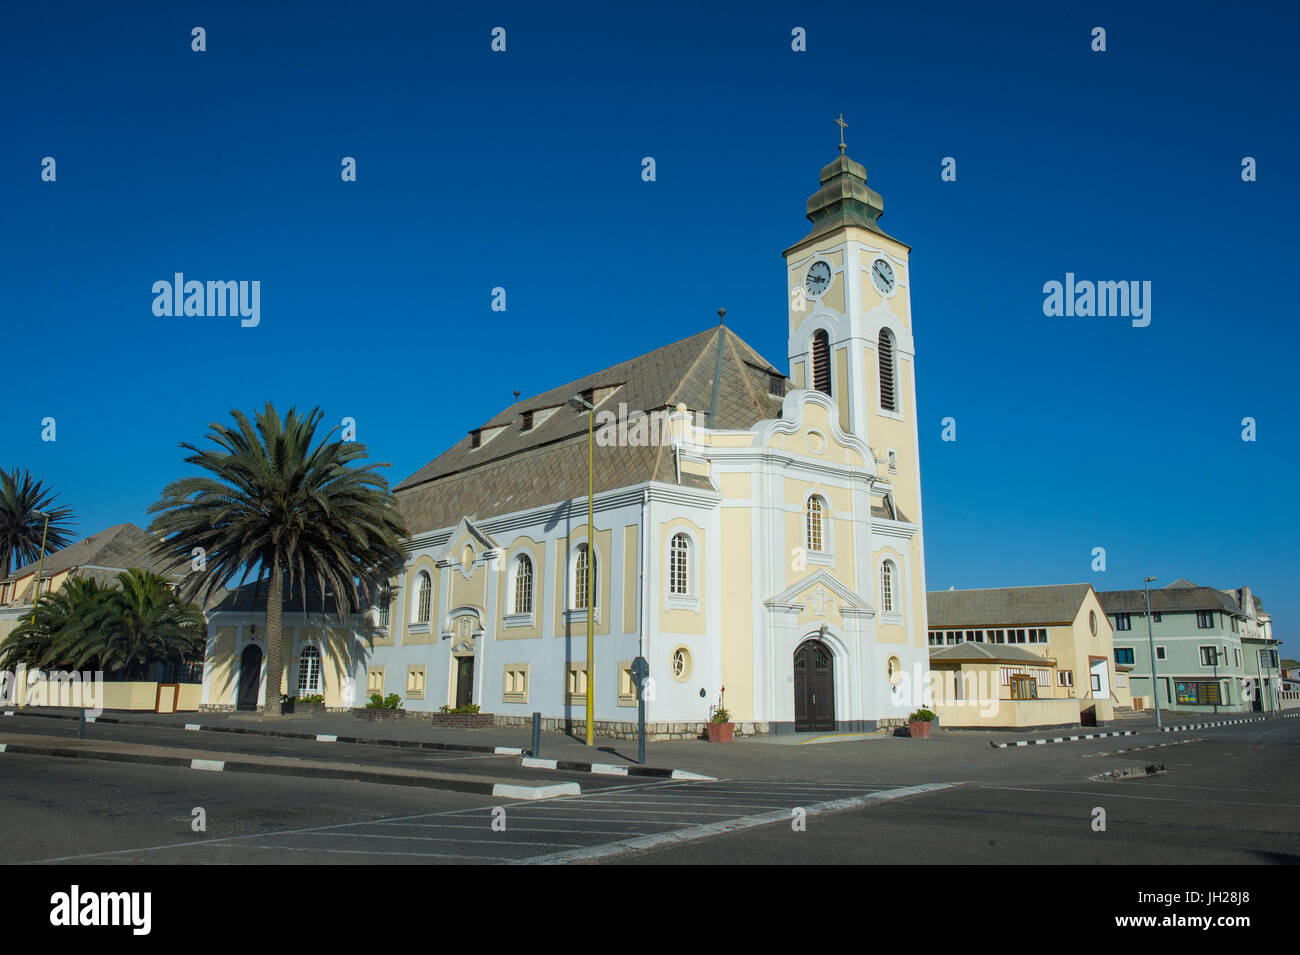 Old German church, Swakopmund, Namibia, Africa - Stock Image